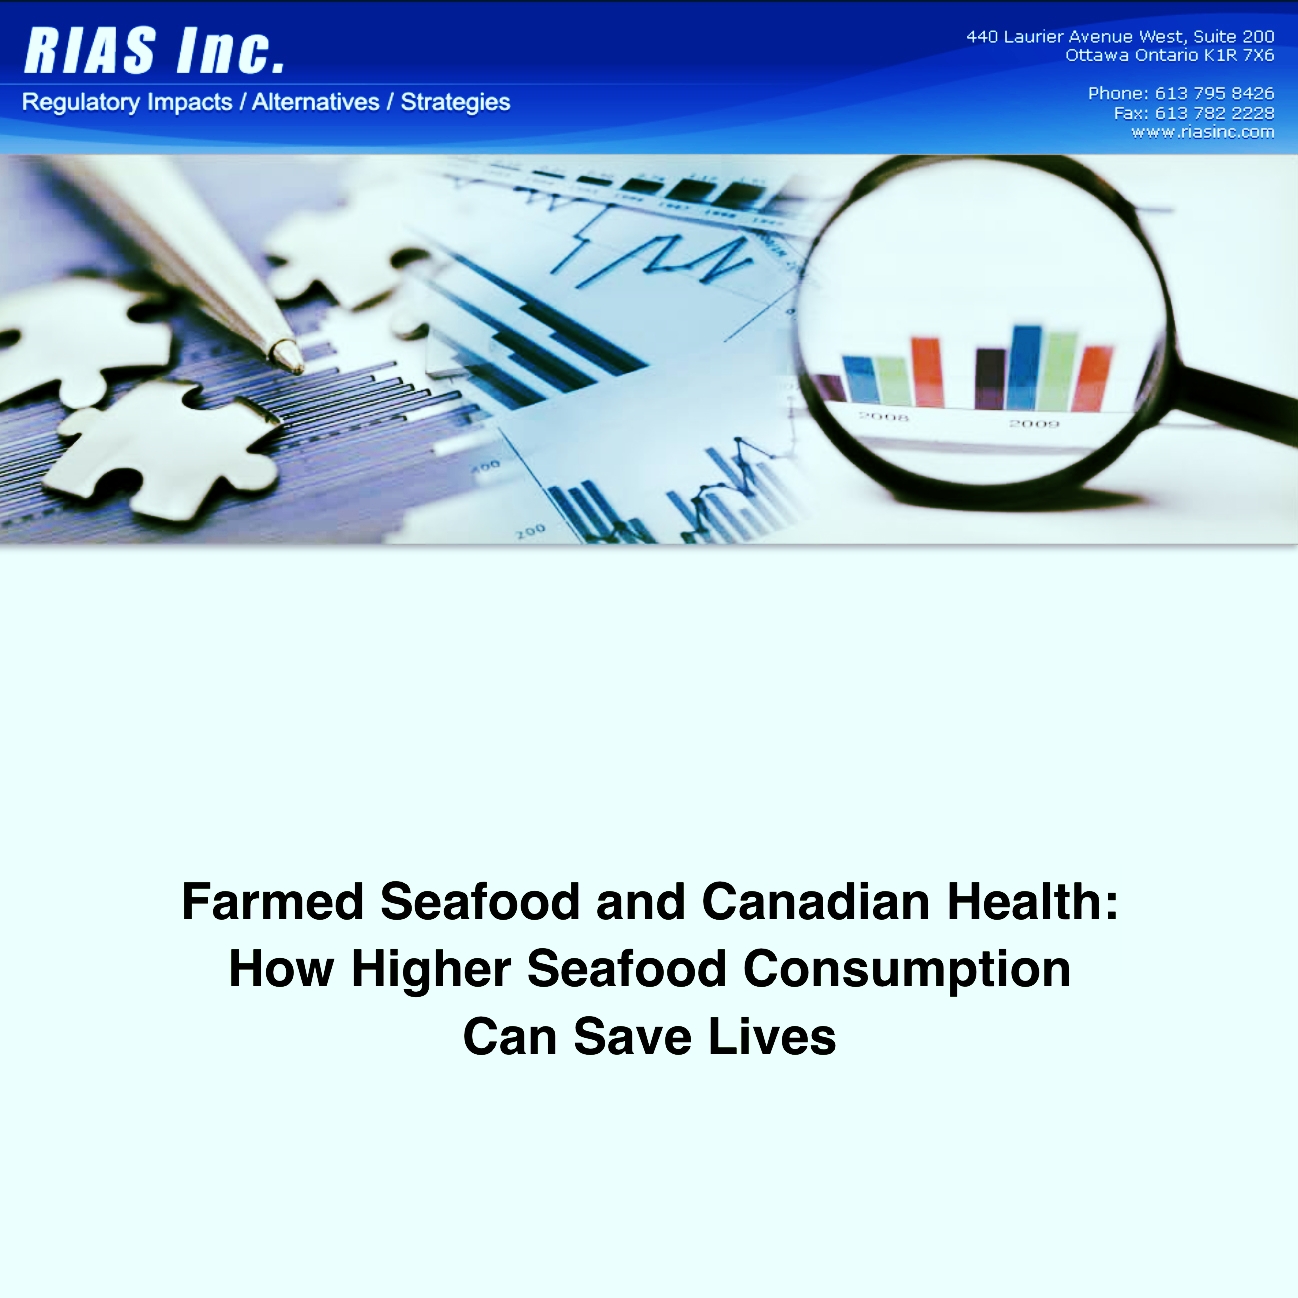 Farmed Seafood and Canadian Health:  How Higher Seafood Consumption Can Save Lives